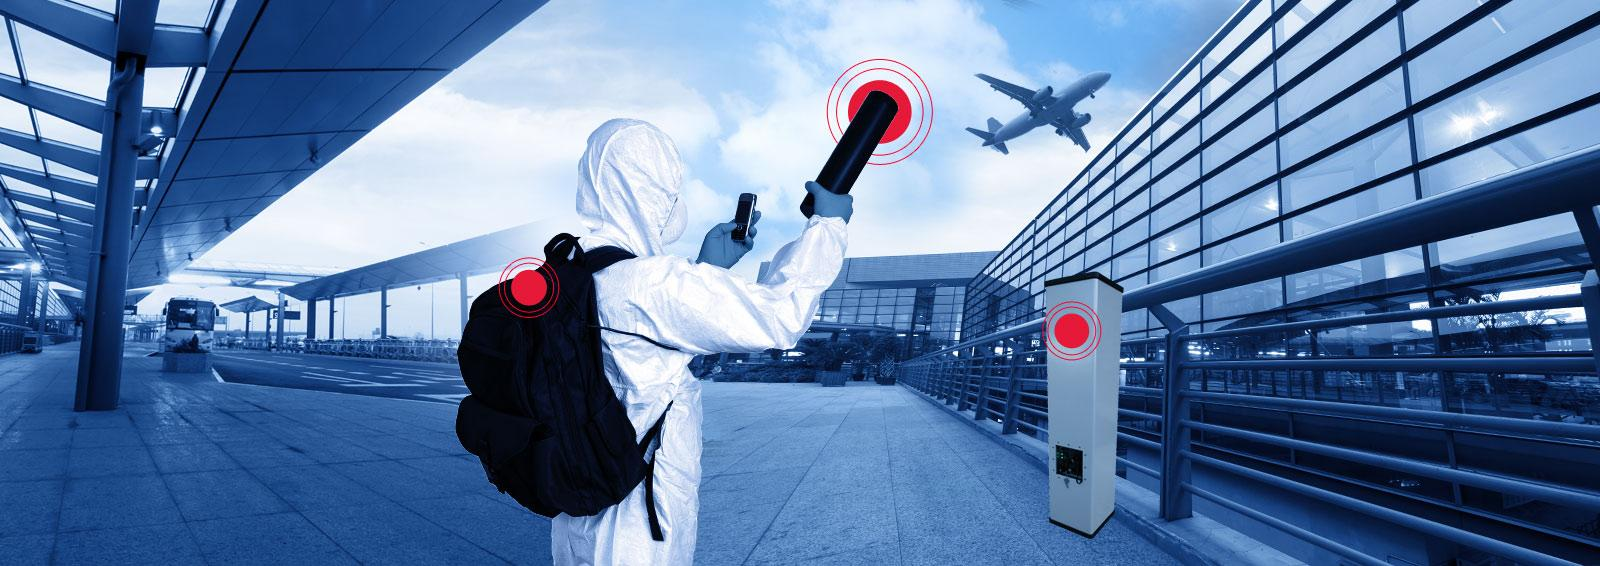 Radiological detection, portable backpack, mobile portal monitor, spectroscopic monitoring